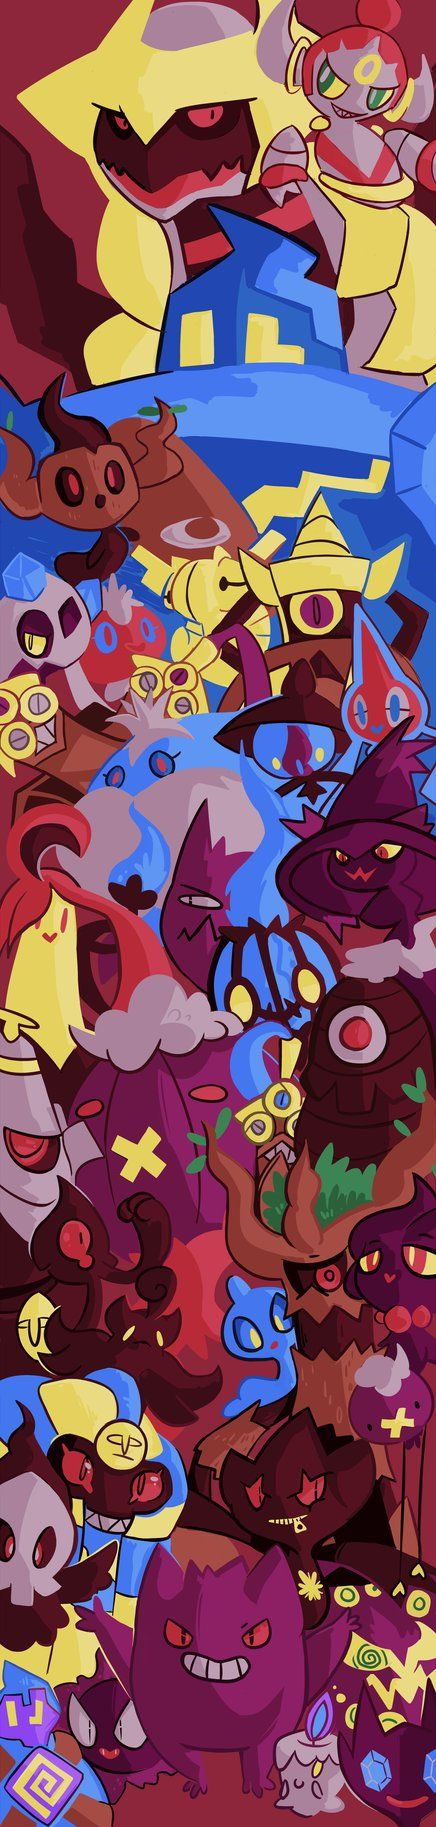 Primary and Secondary Ghost-Type Pokemons joined together!